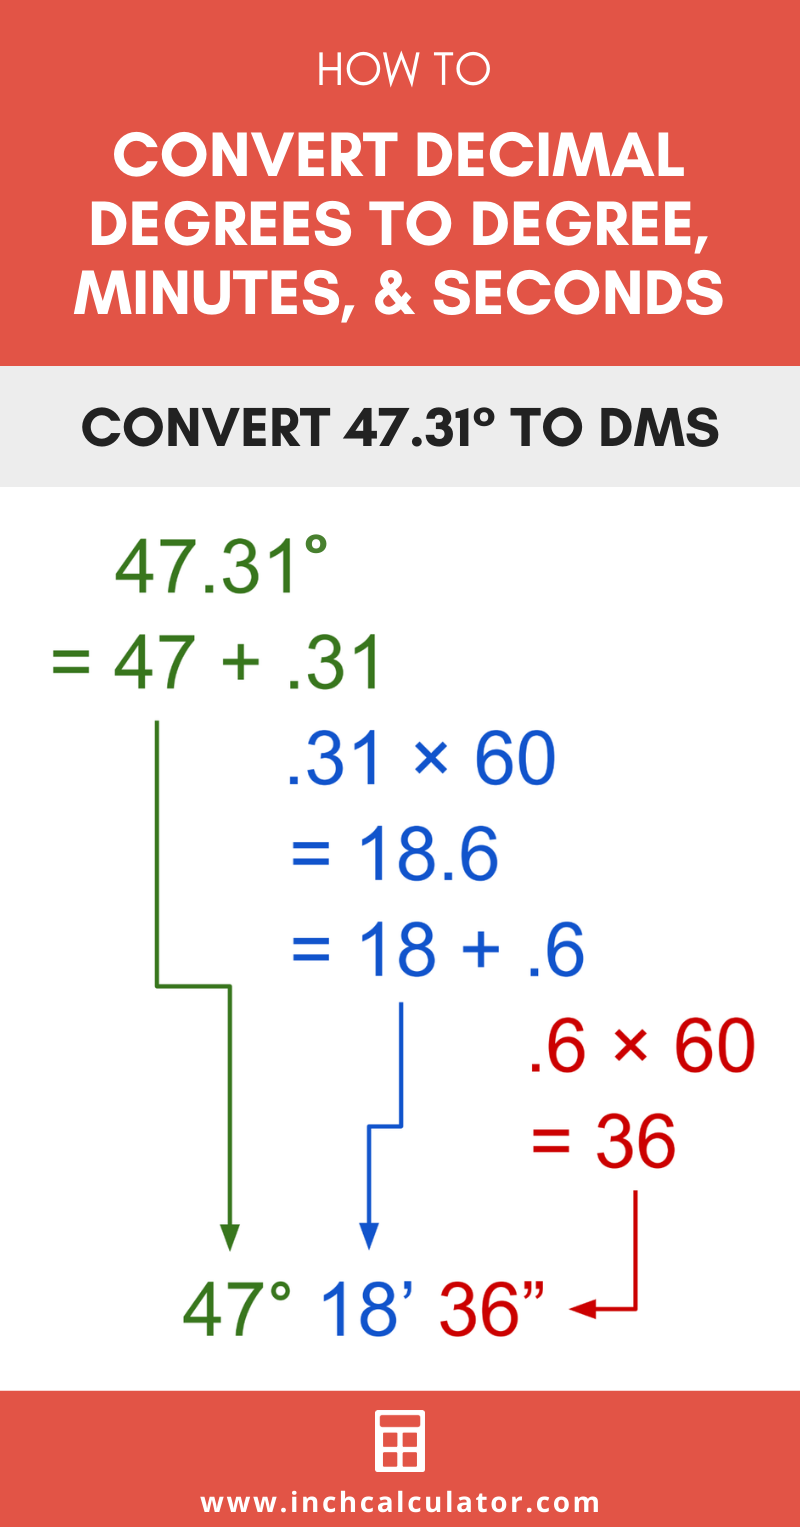 Share decimal degrees to degrees, minutes, seconds calculator